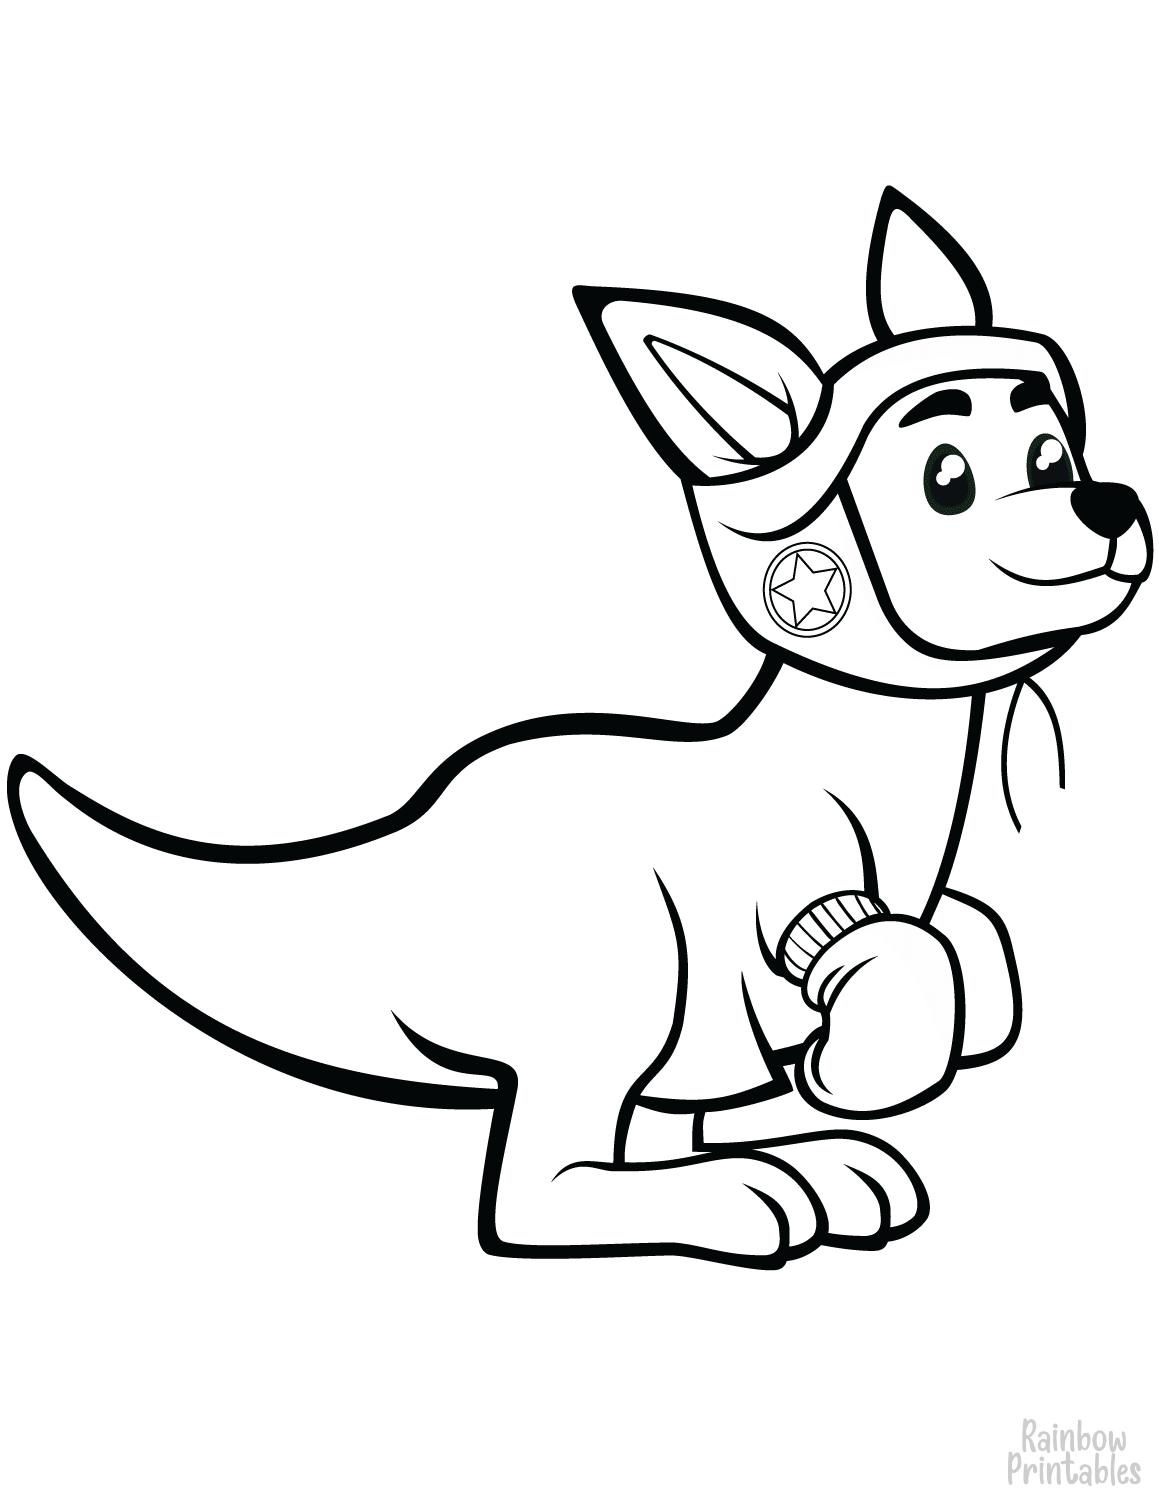 Free coloring sheet for kids kangaroo with boxing gloves coloring page